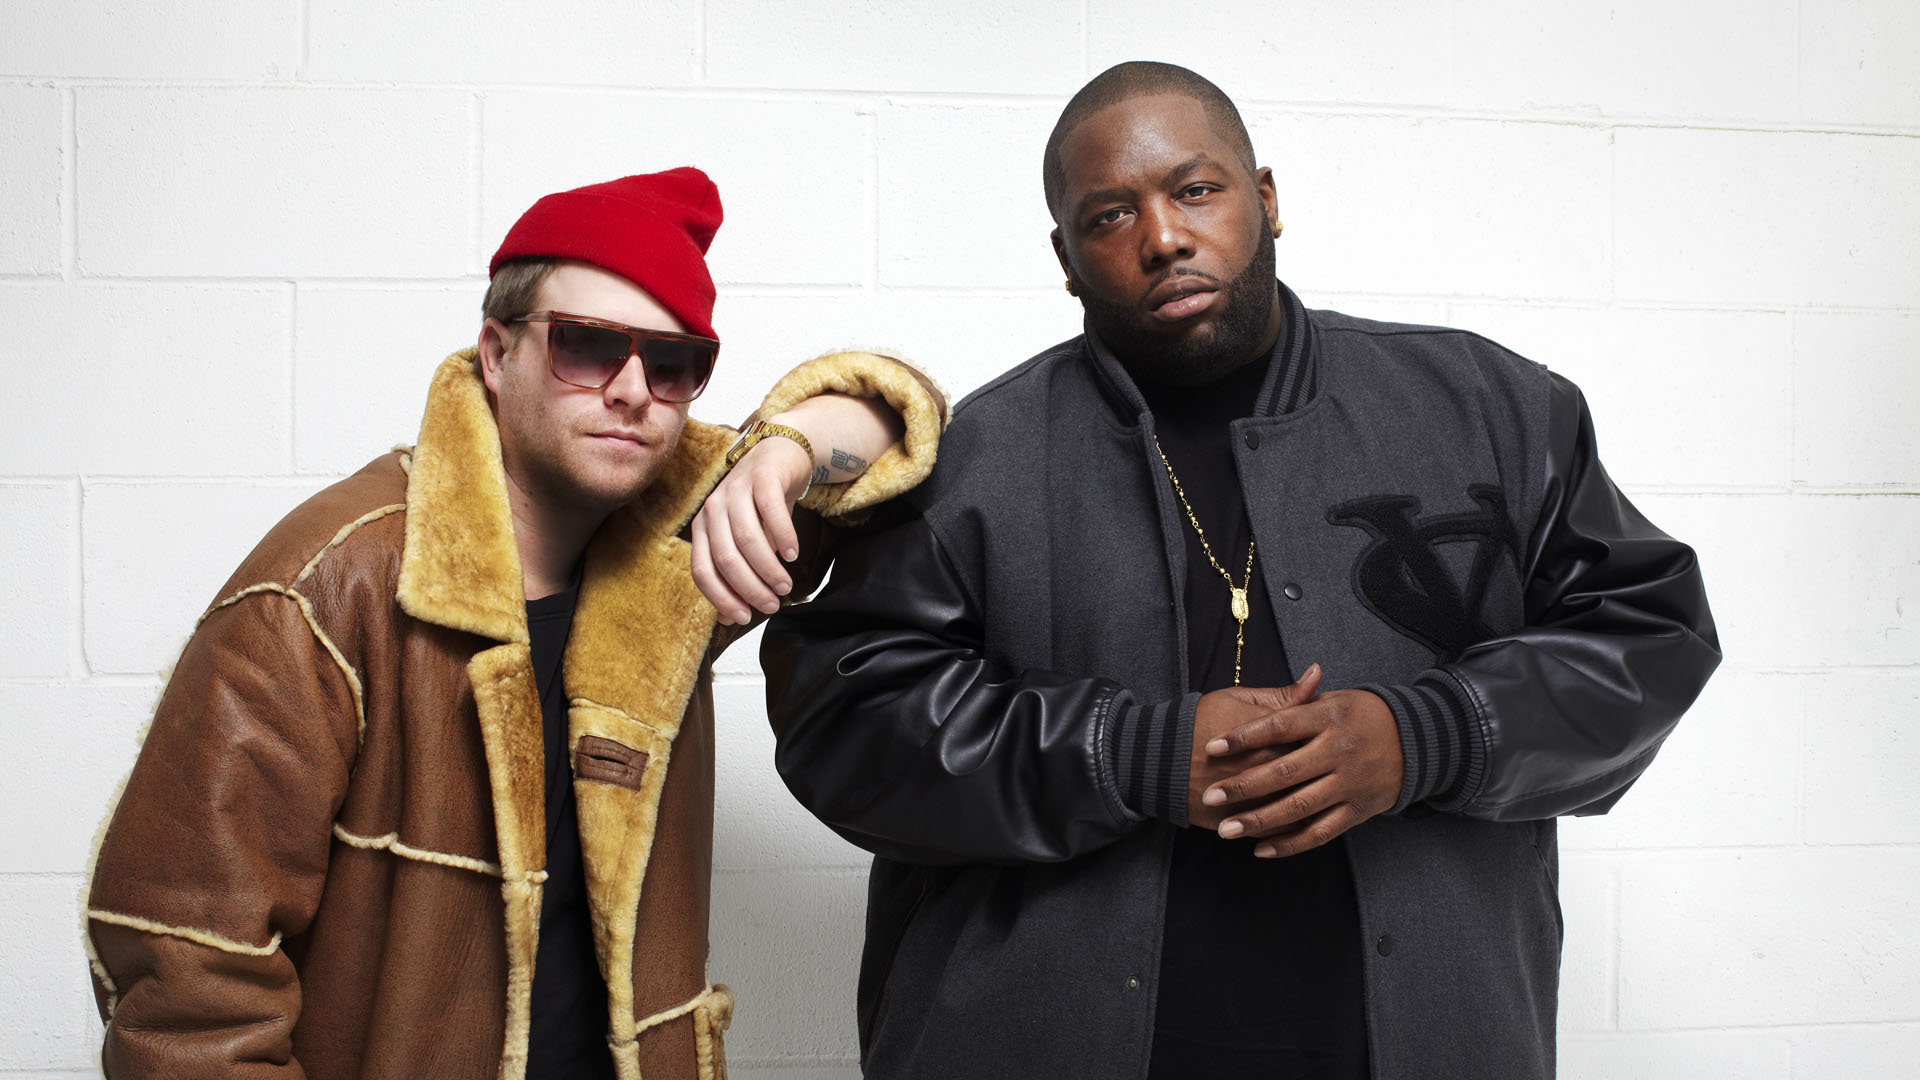 El-P and Killer Mike